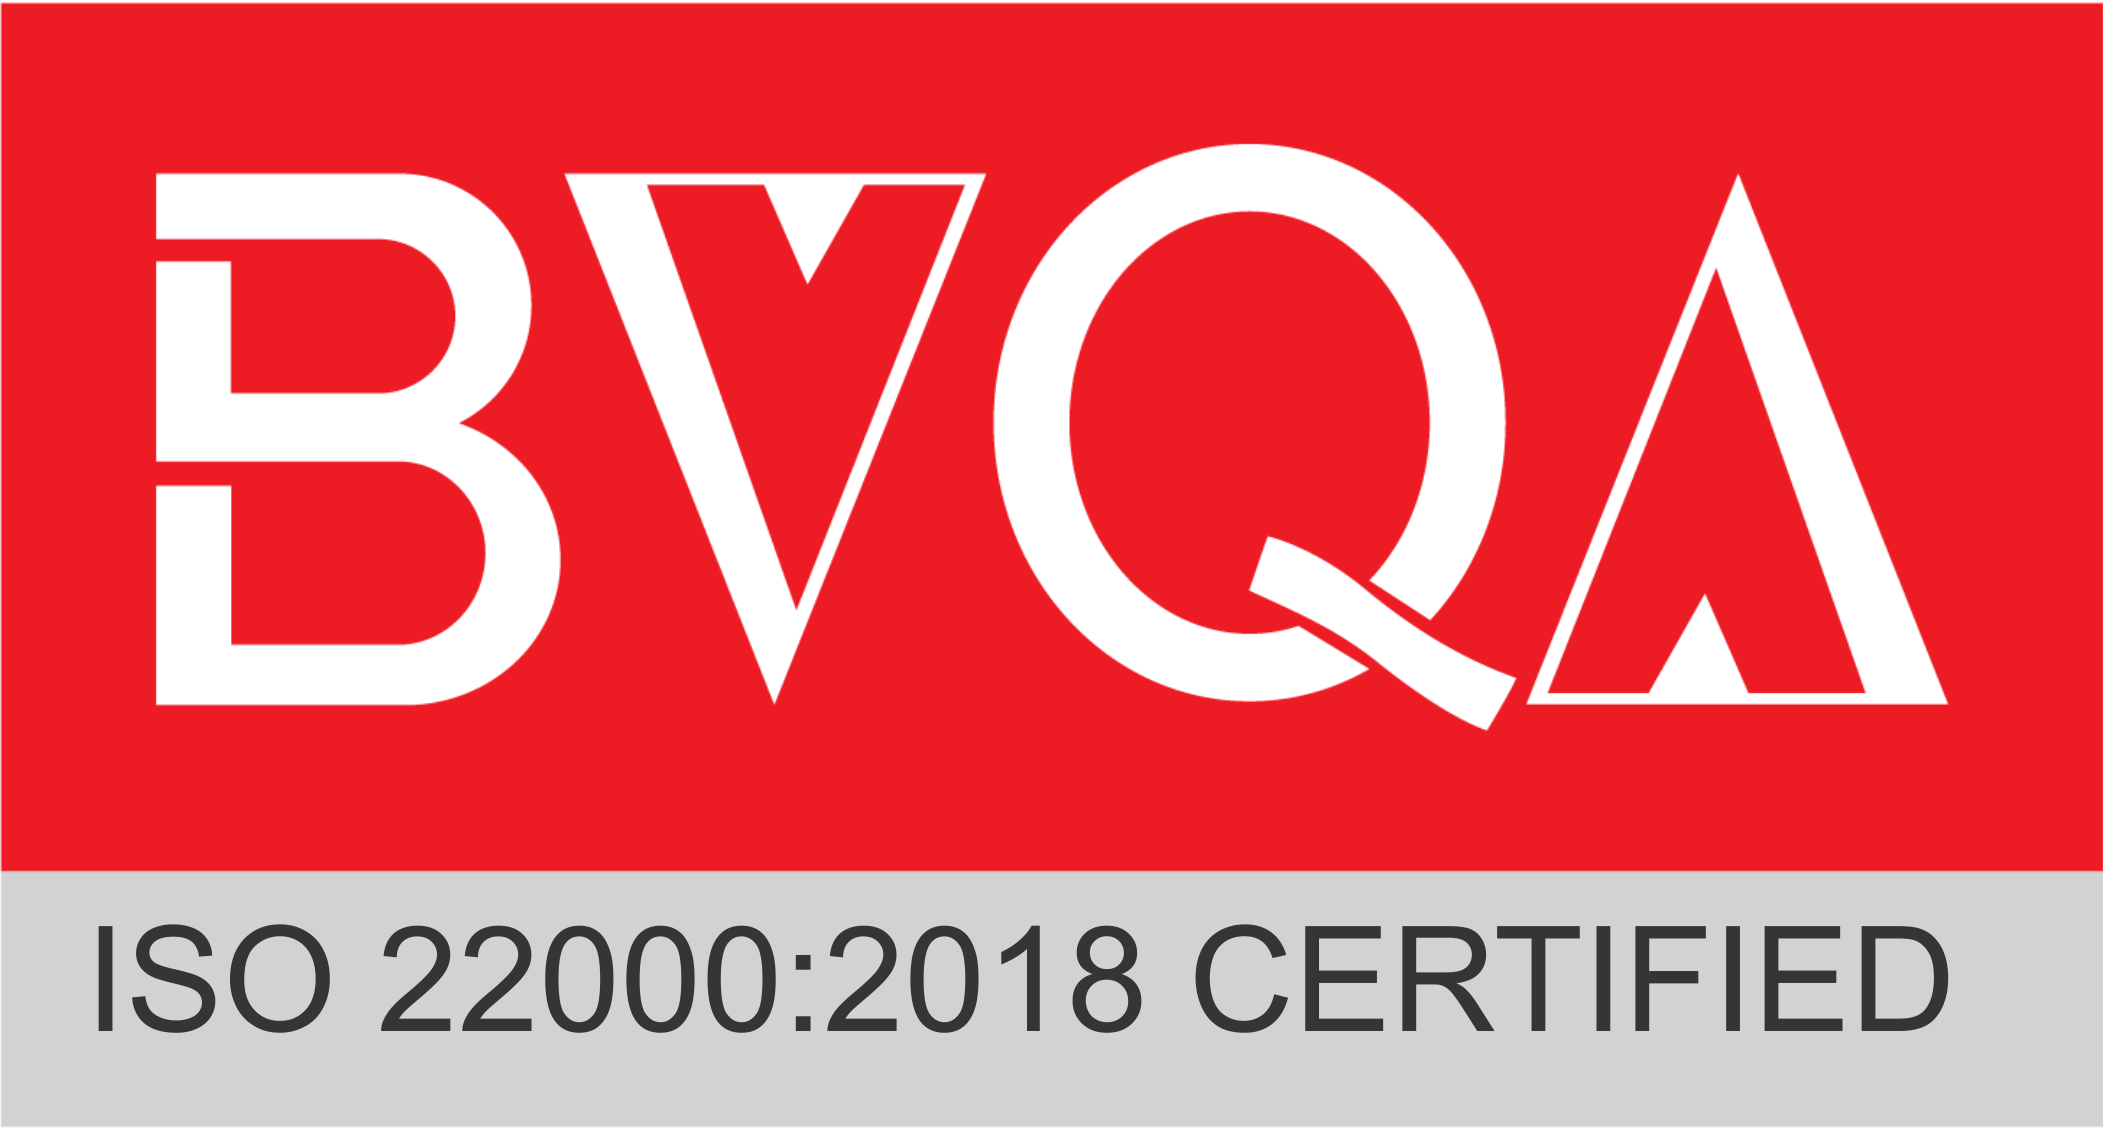 BVQA is ready for issuing accredited ISO 22000:2018 & HACCP certificates